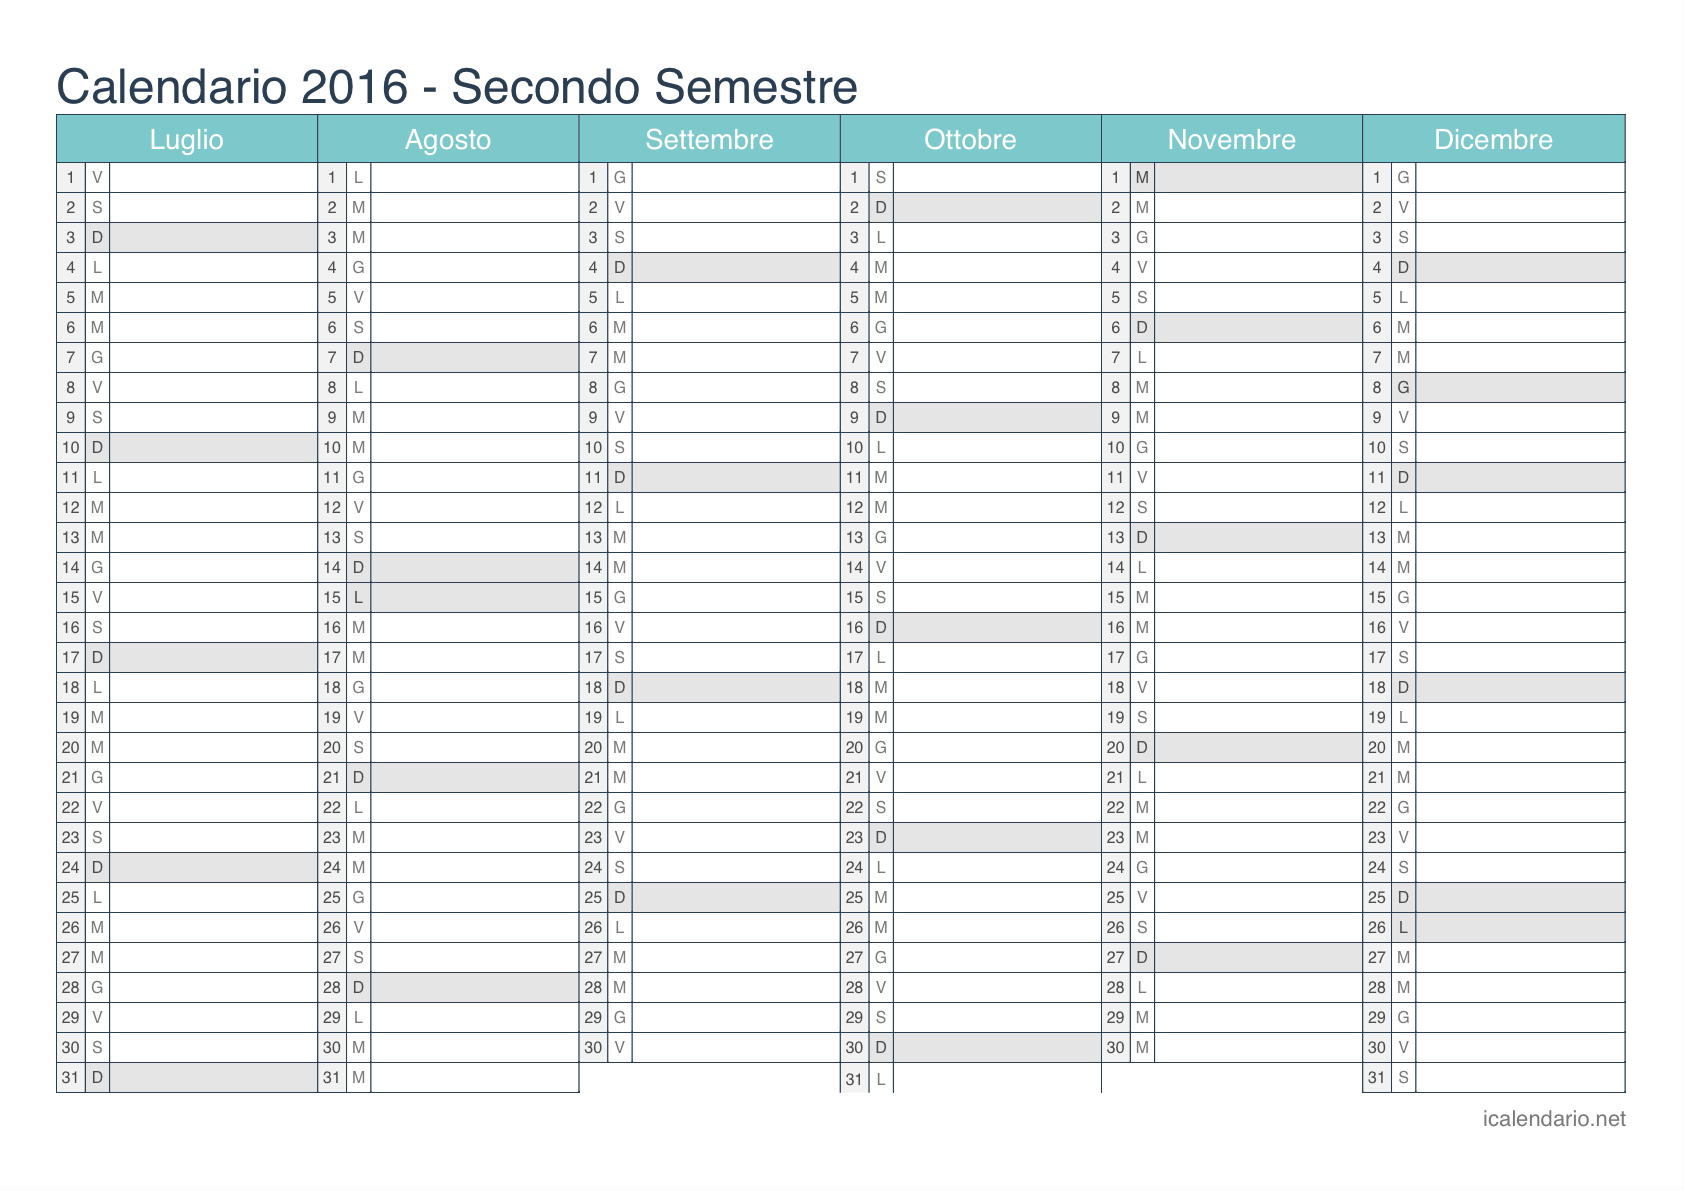 Calendario Anno 2016 Da Stampare.Calendario 2016 Da Stampare Icalendario It